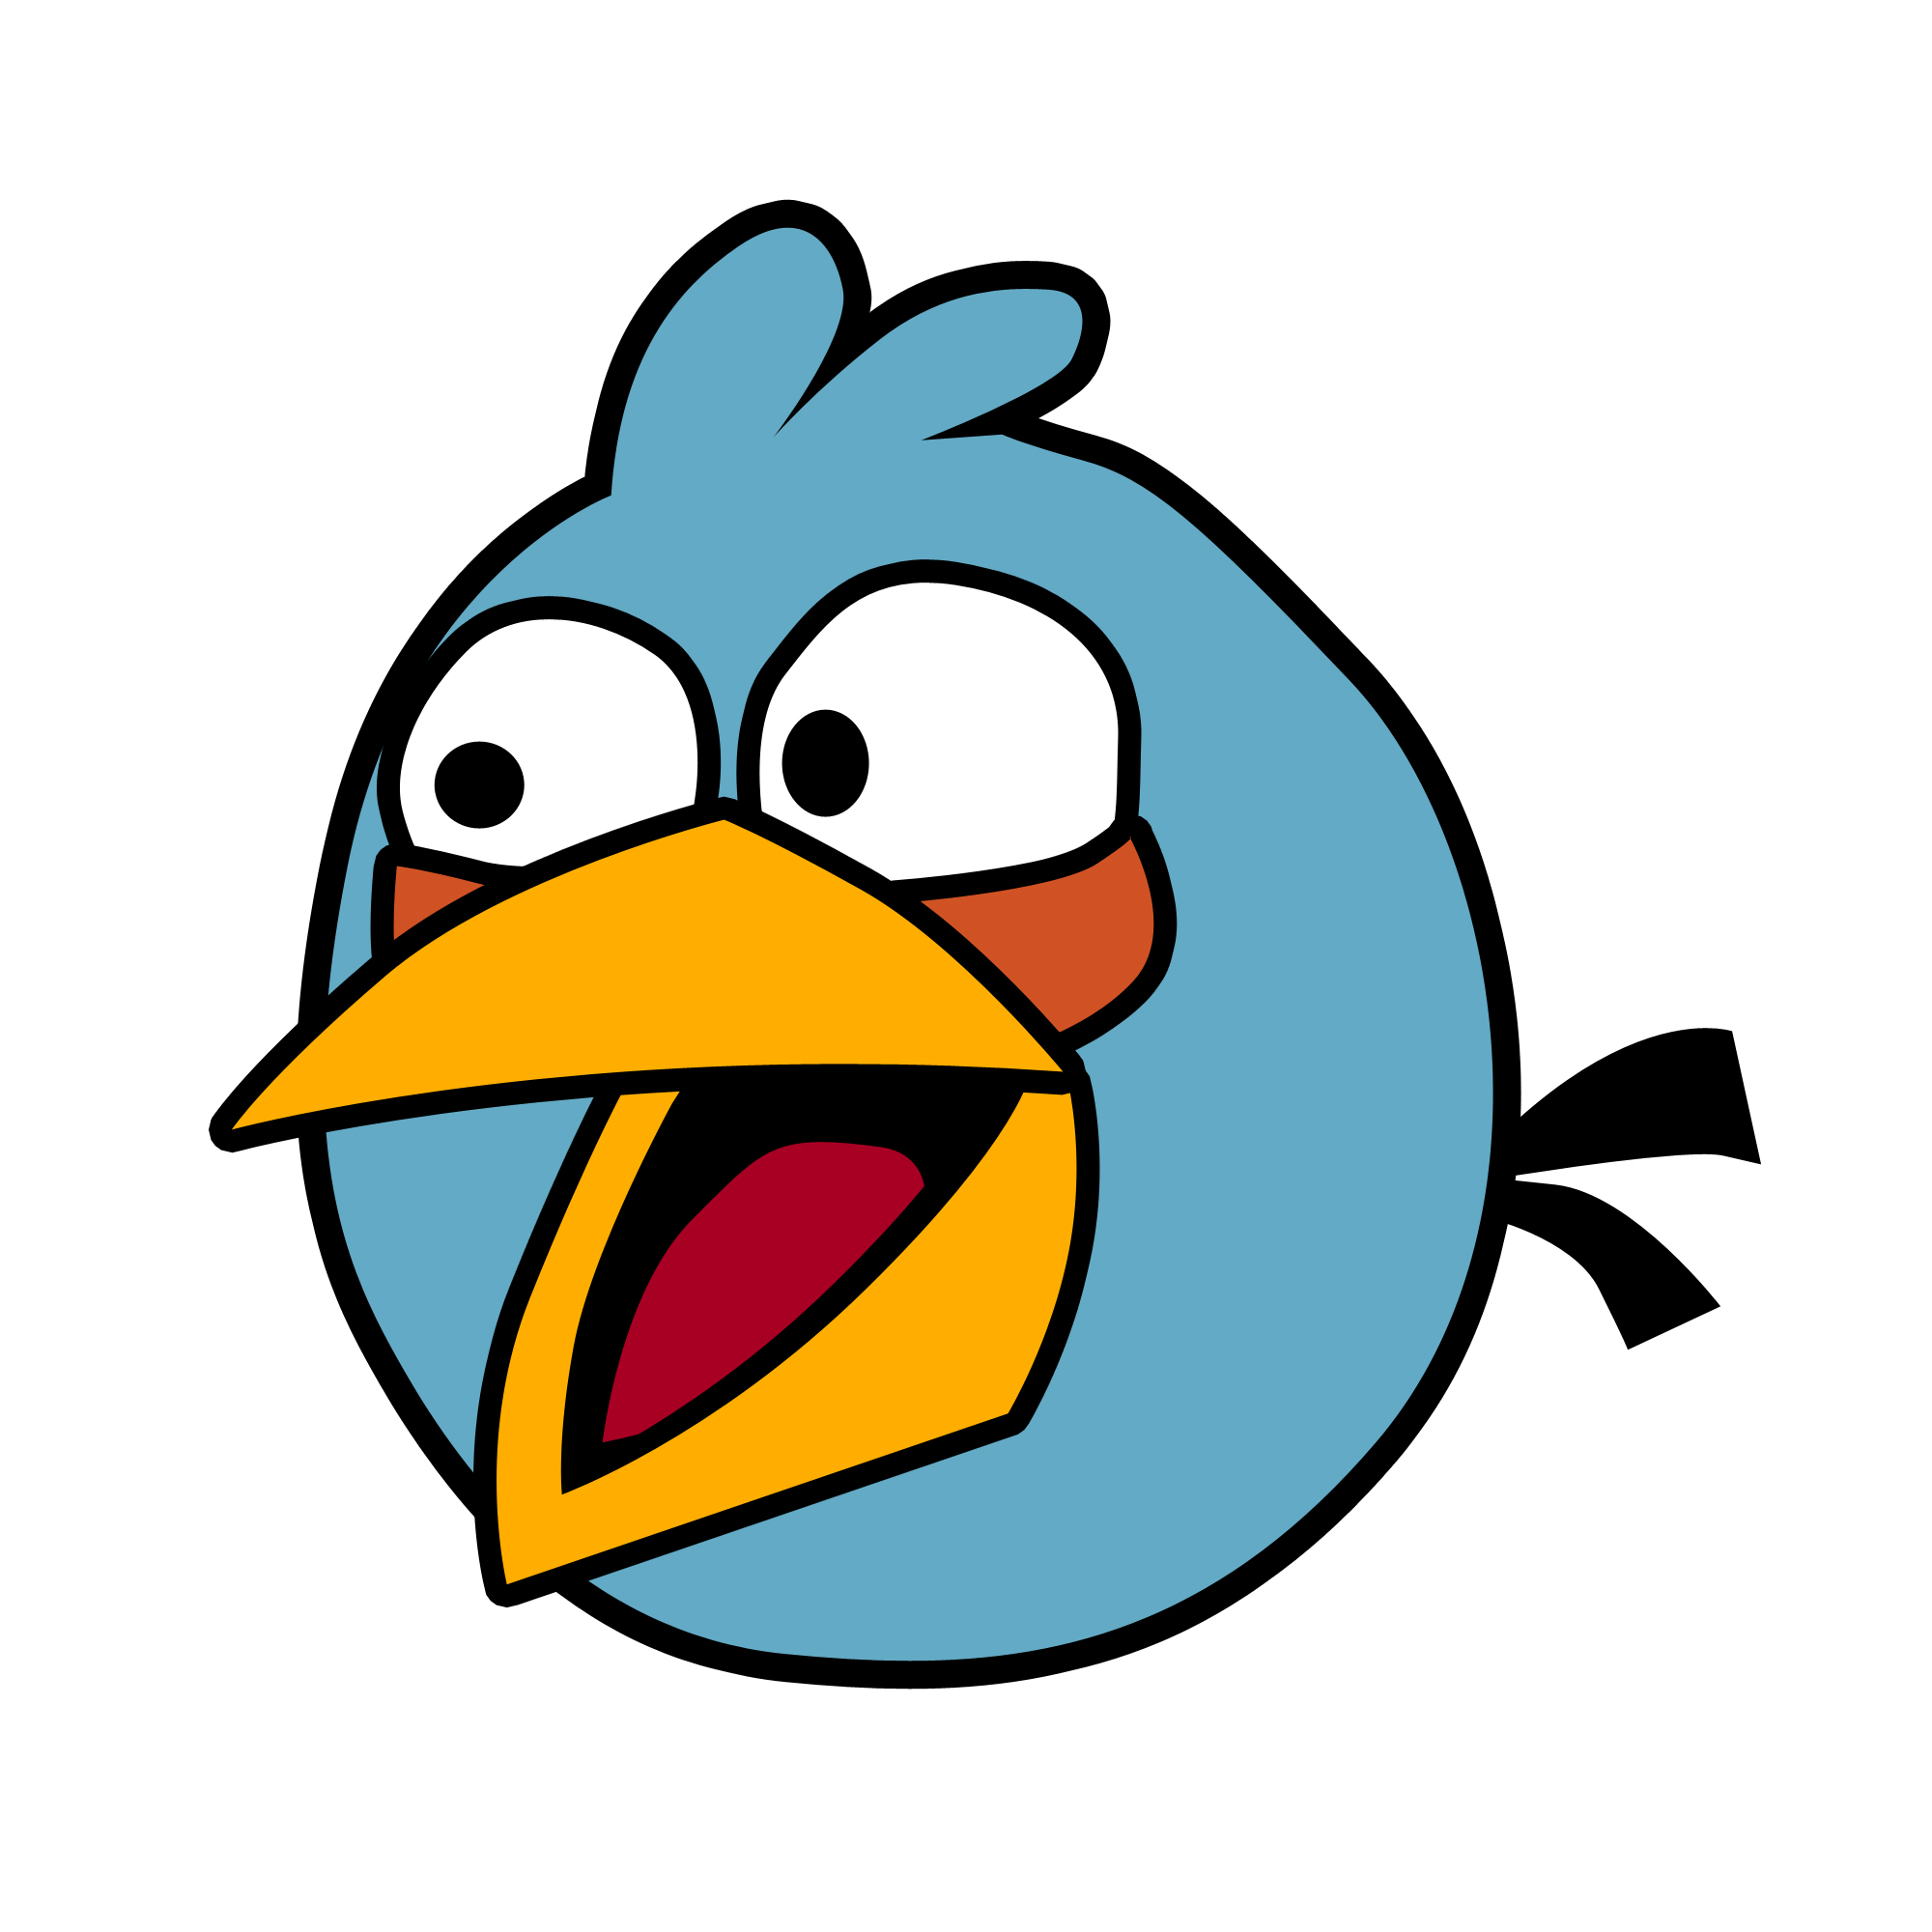 Angry Birds - Blue Bird by DarrenTaxi on DeviantArt